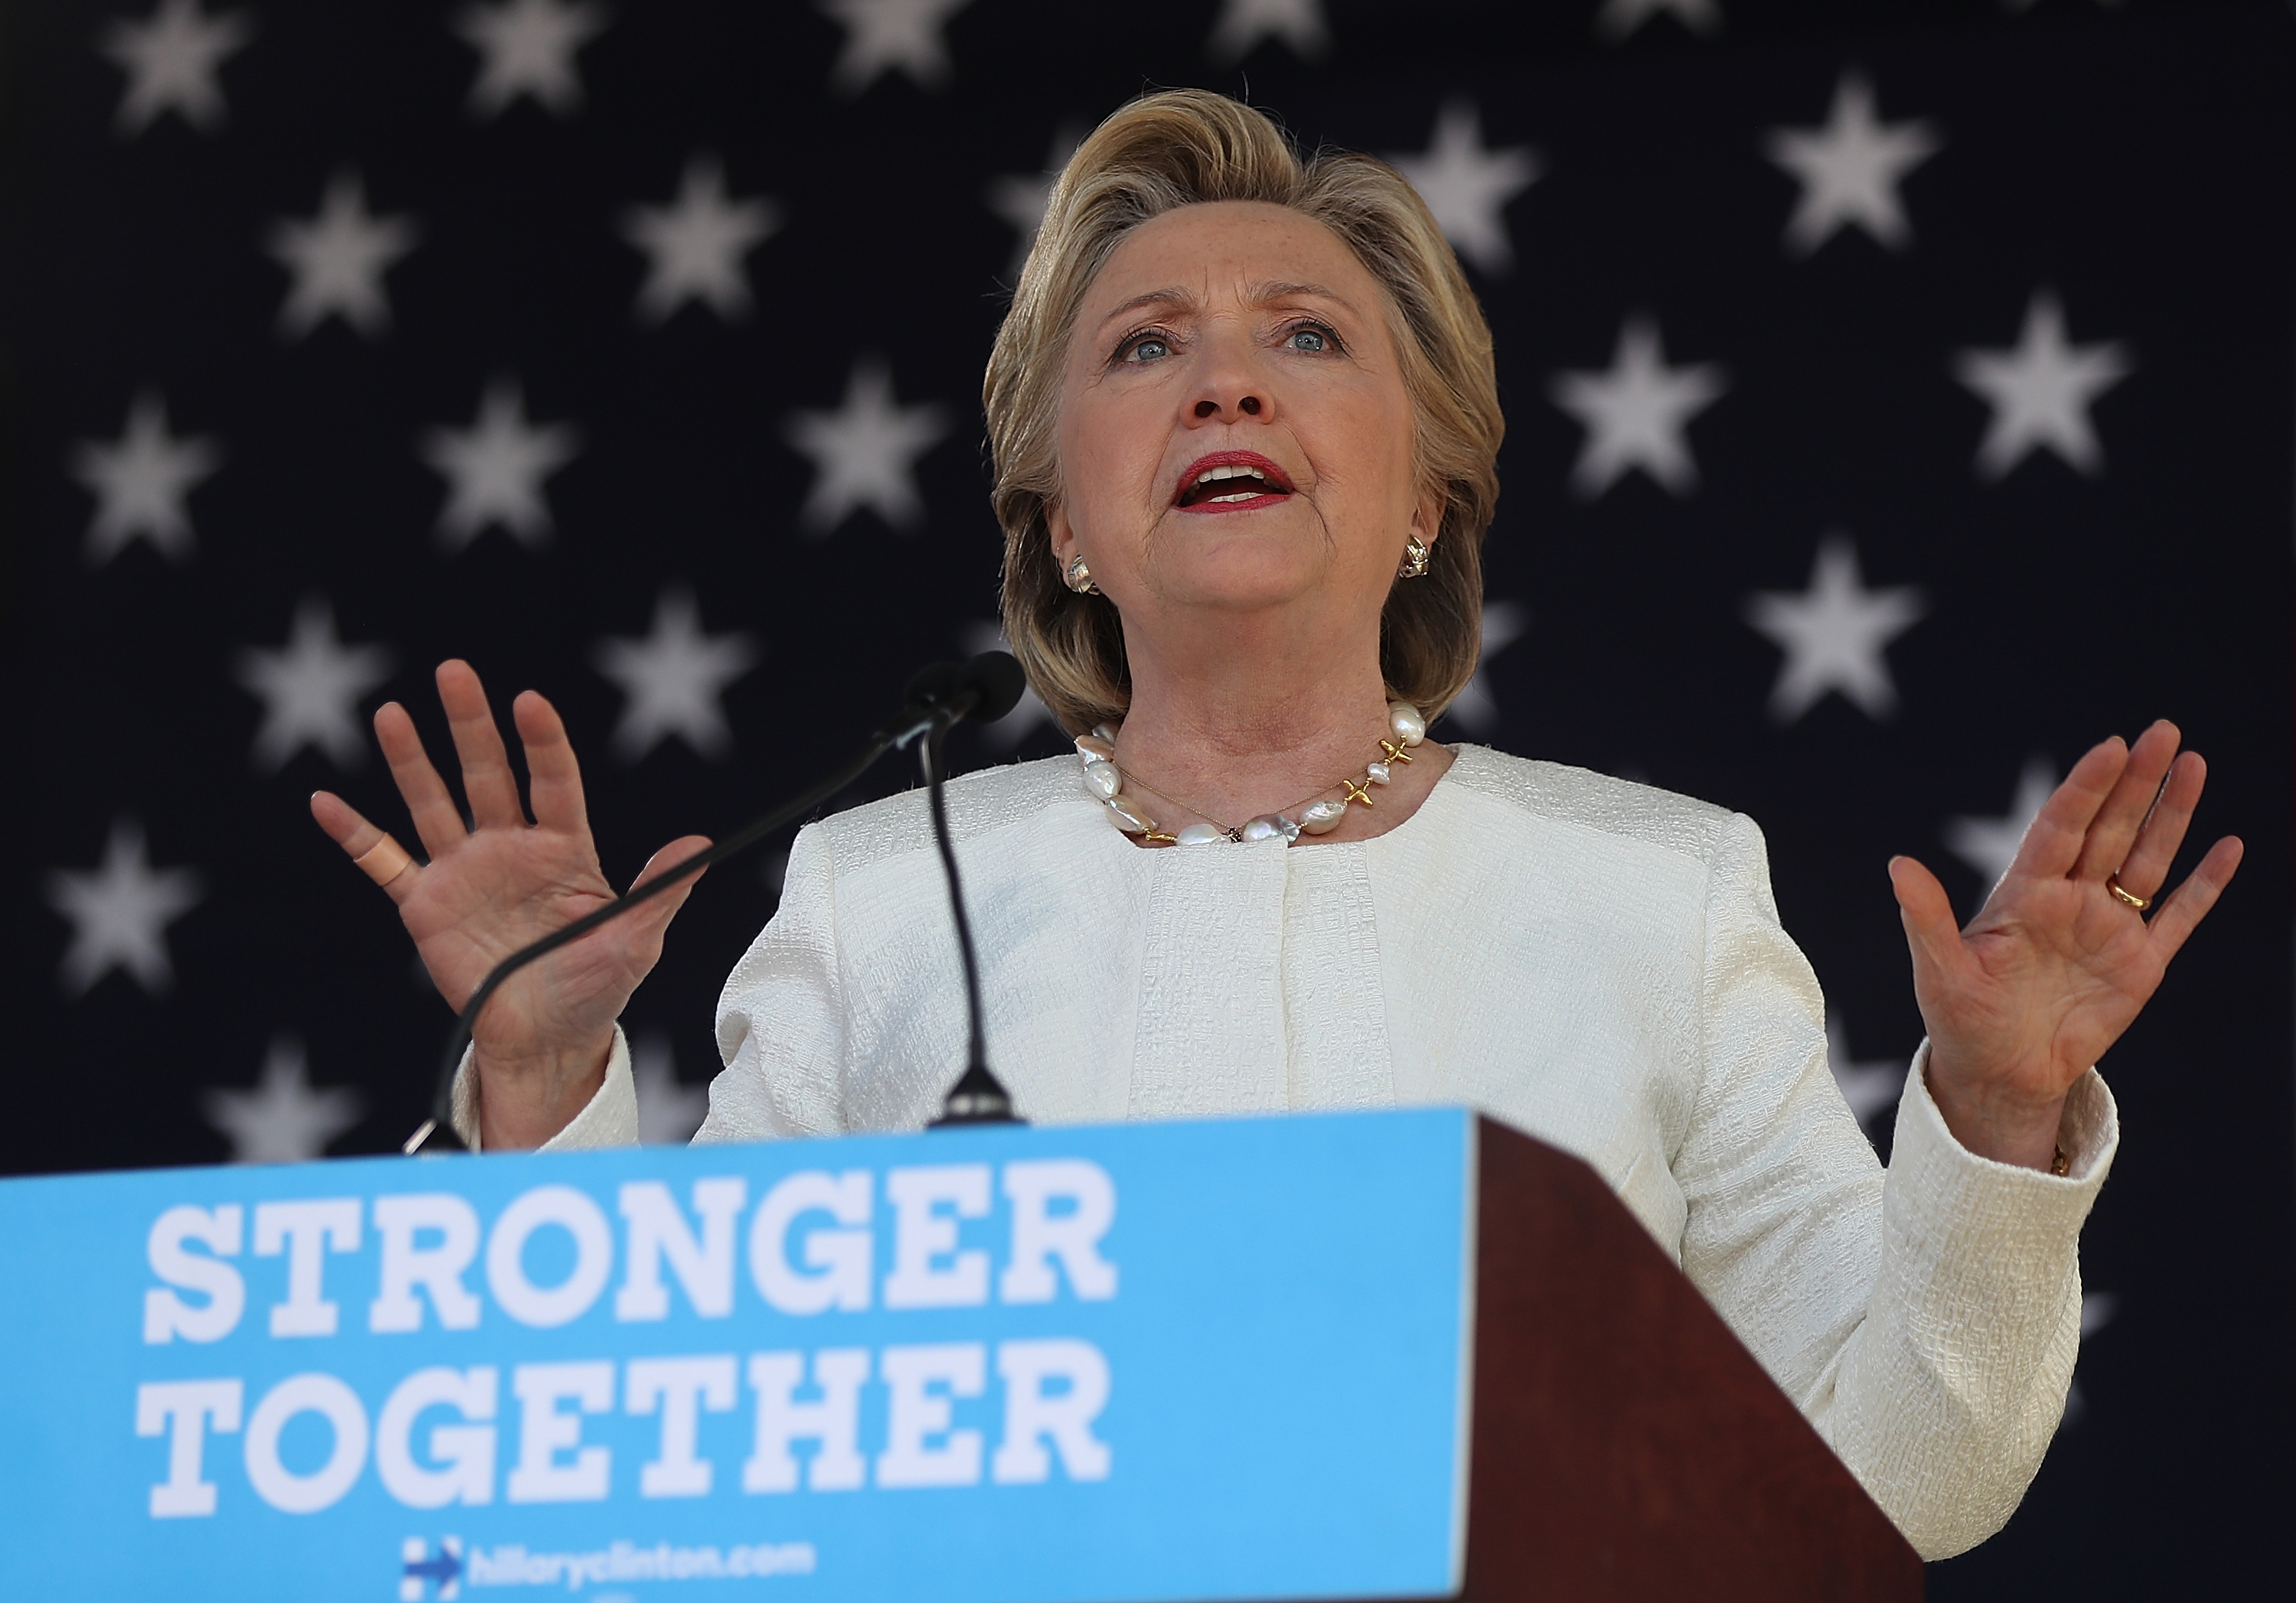 Democratic presidential nominee former Secretary of State Hillary Clinton speaks during a campaign rally on November 1, 2016 in Dade City, Florida.